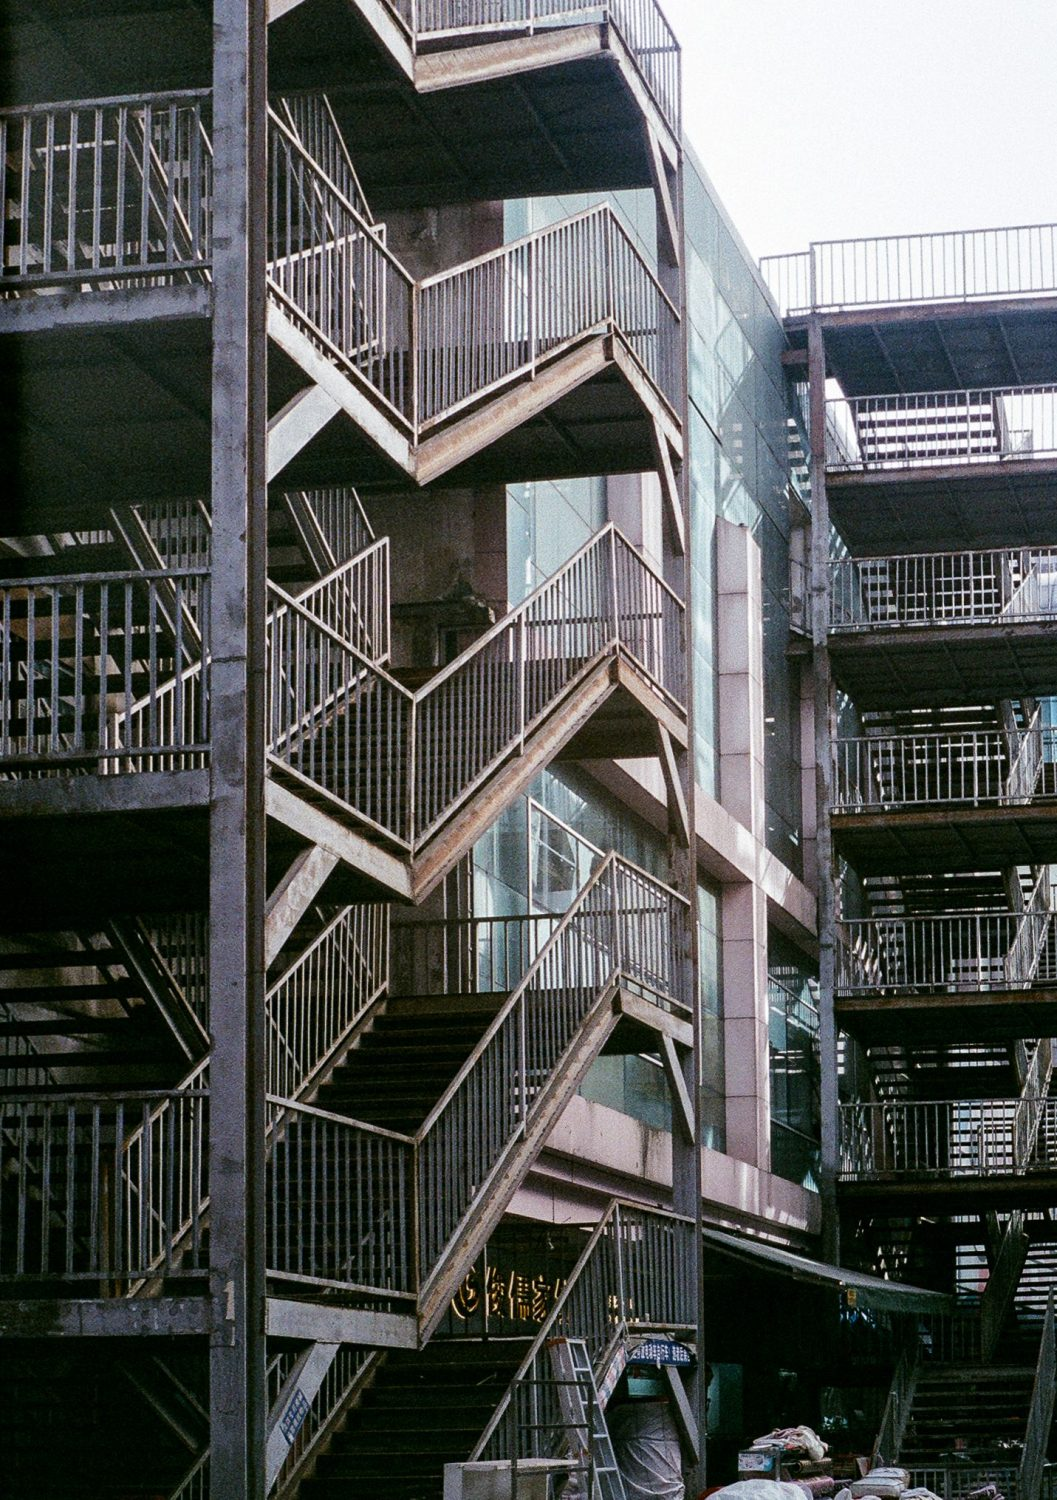 Iron stairways on side of building (Pic: Jay SE1)